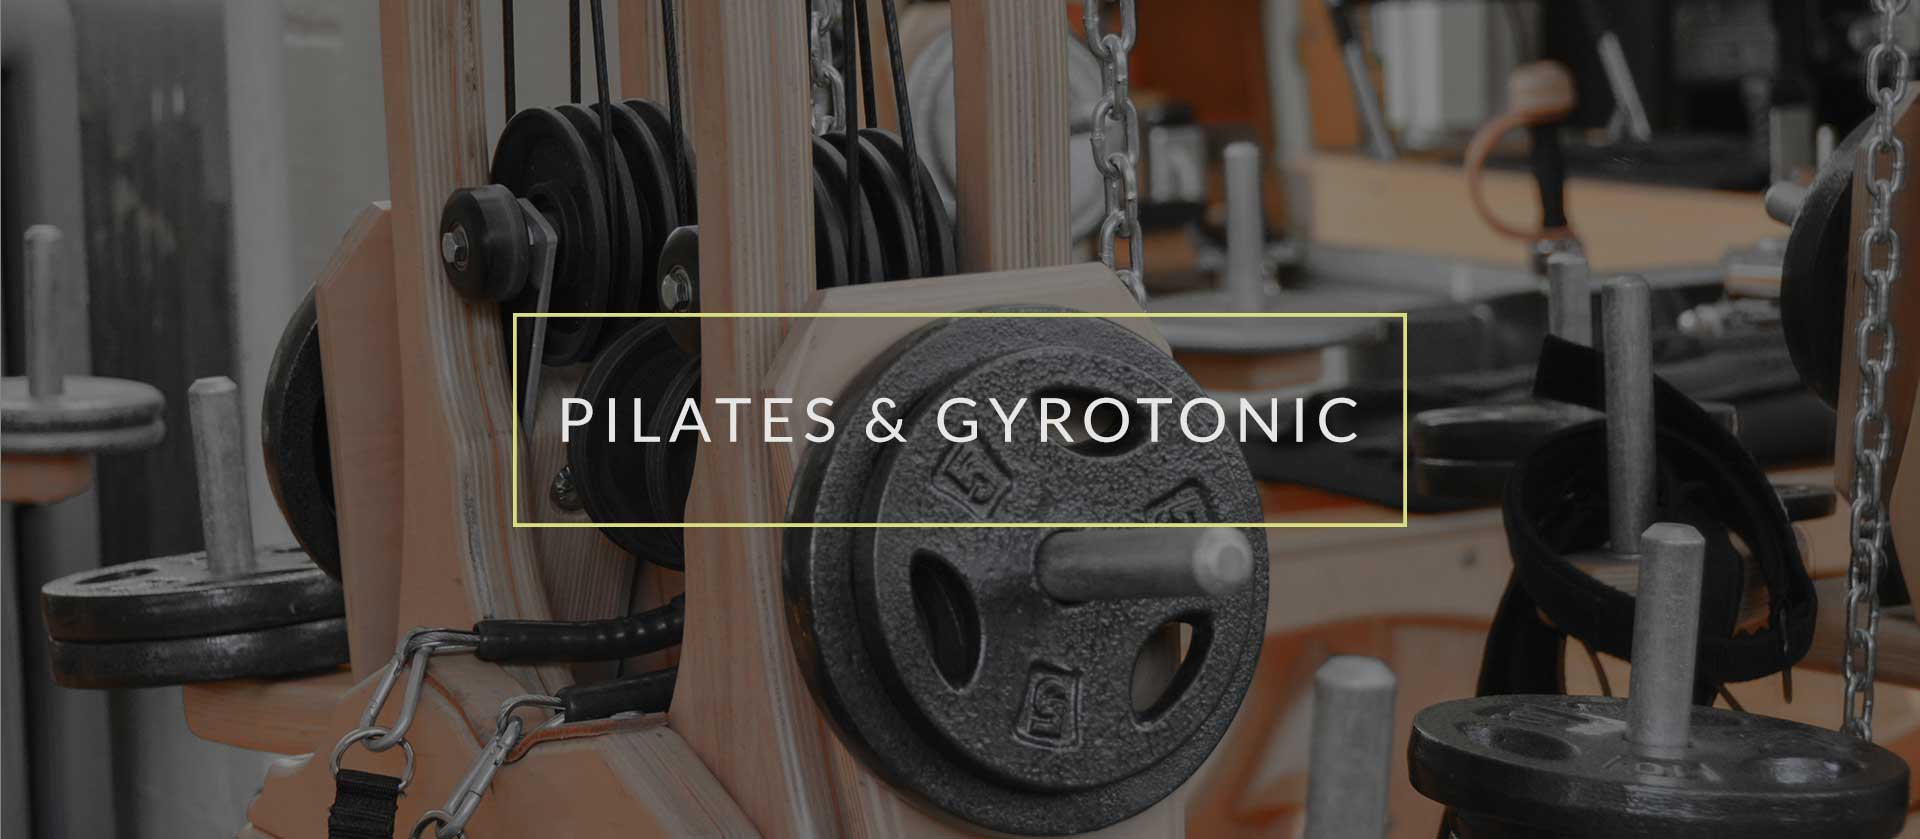 pilates and gyrotonics